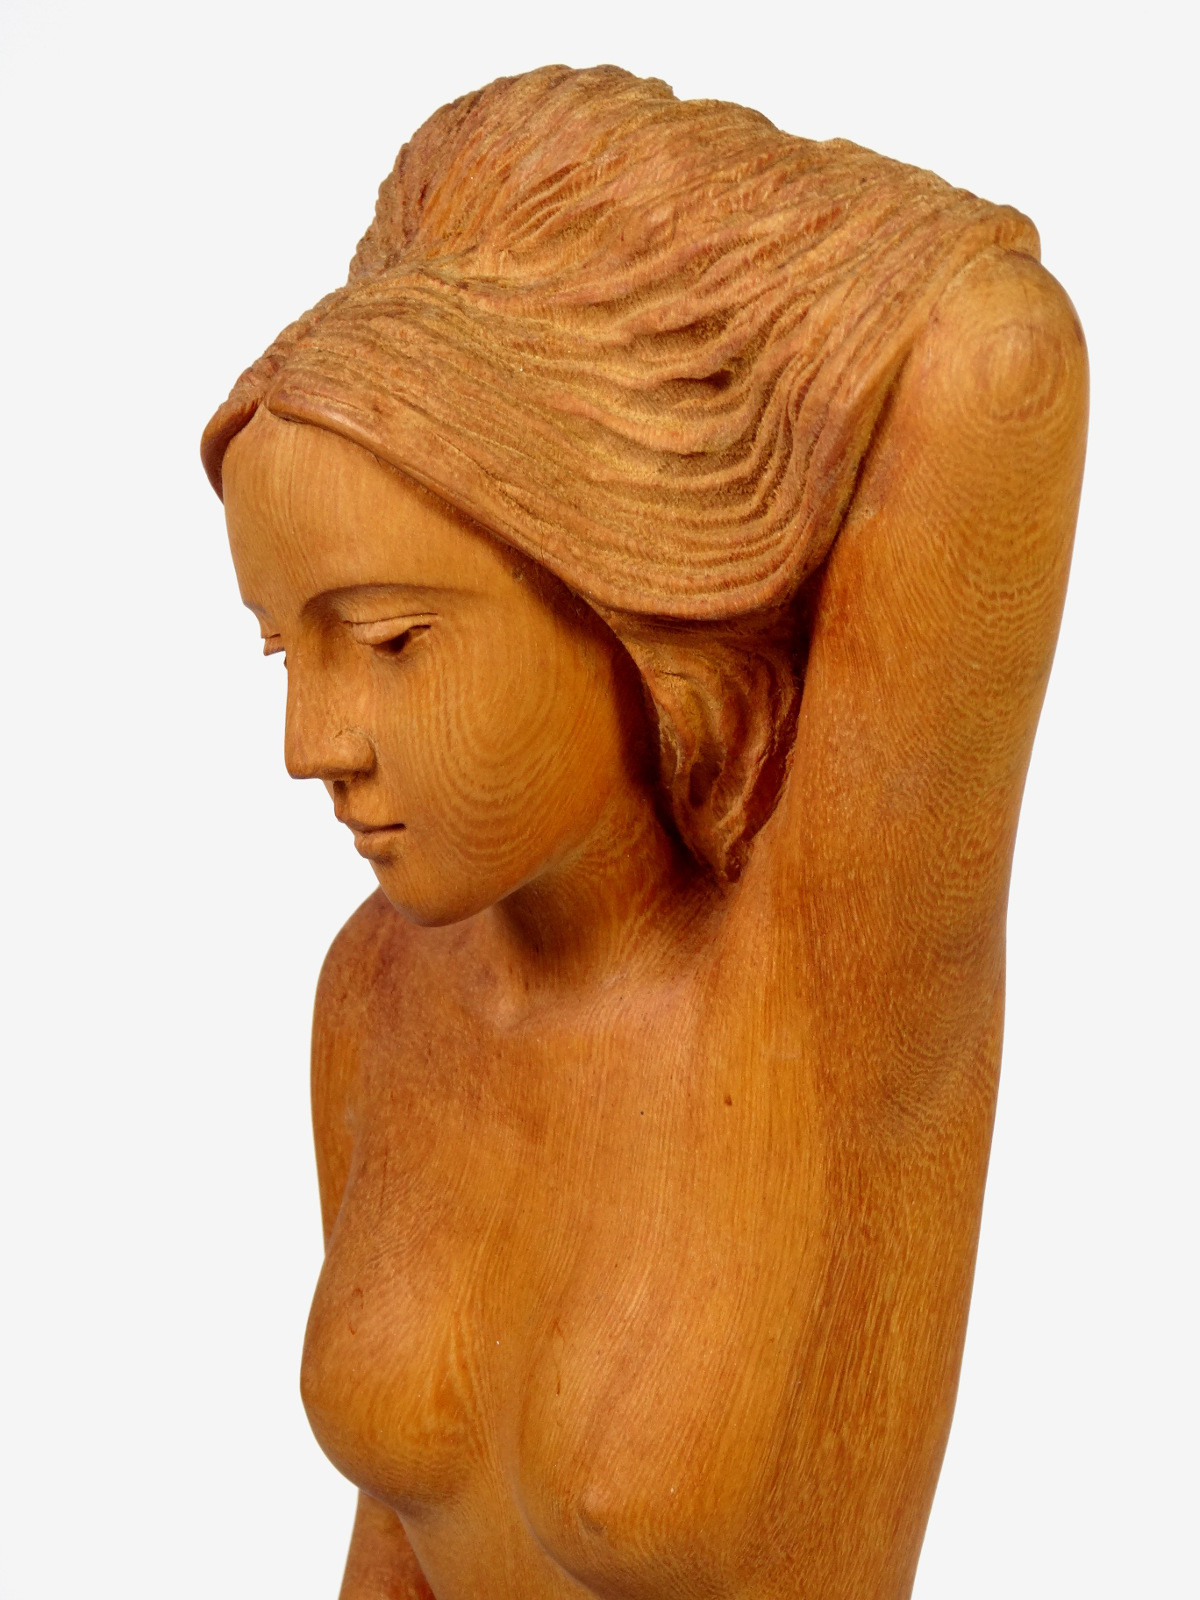 Kneeling Nude, Large Wood Sculpture